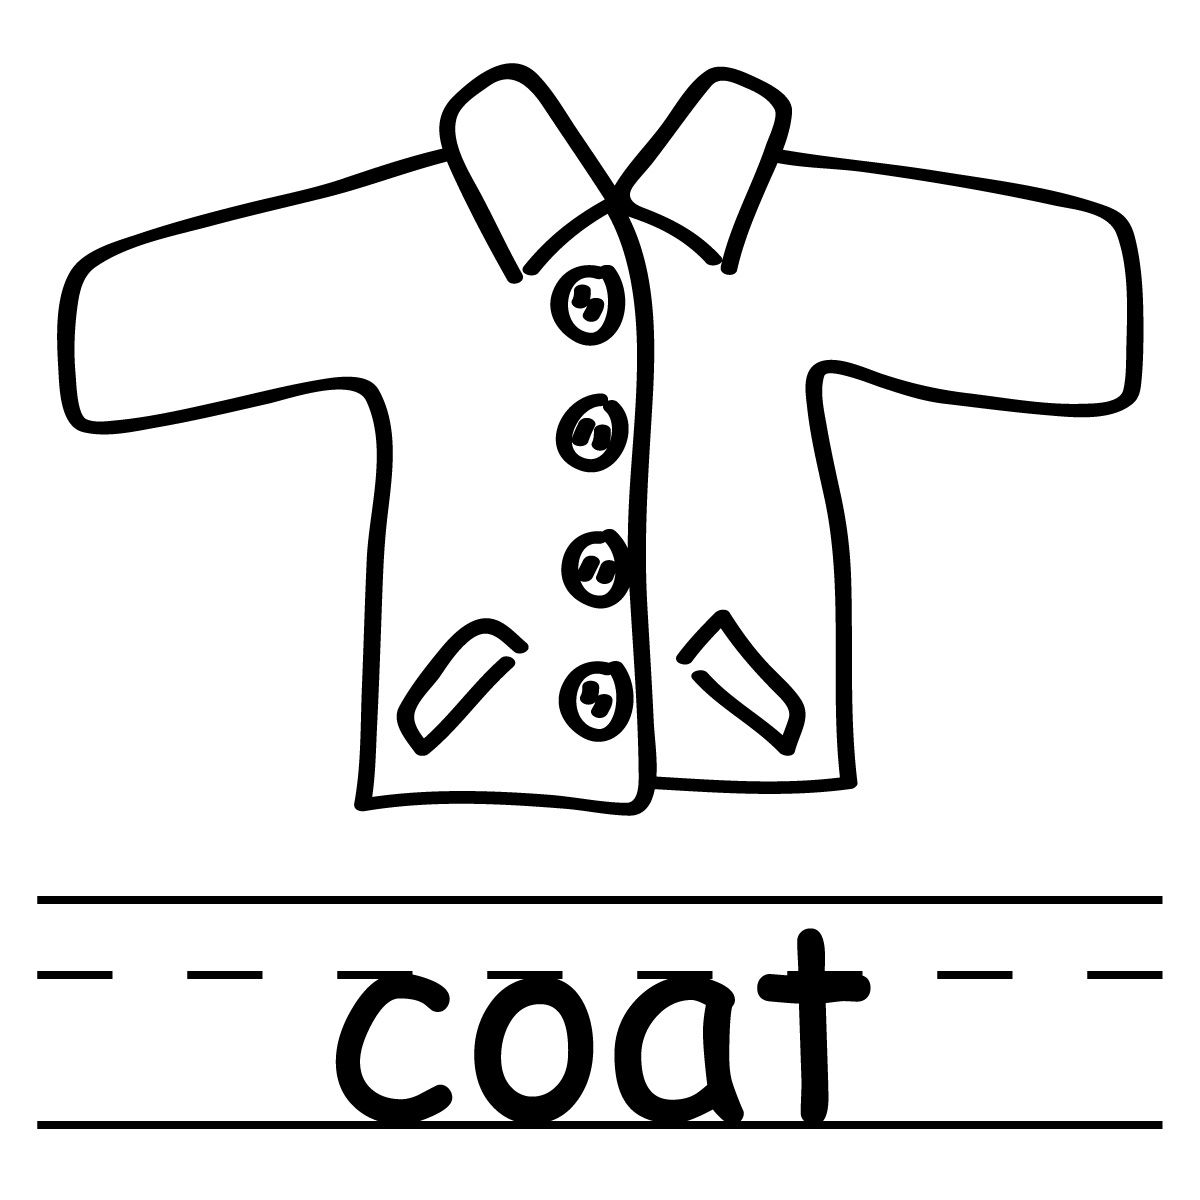 free clipart for teachers clothing for teachers parents students and similar image and photo in clothing  [ 1200 x 1200 Pixel ]